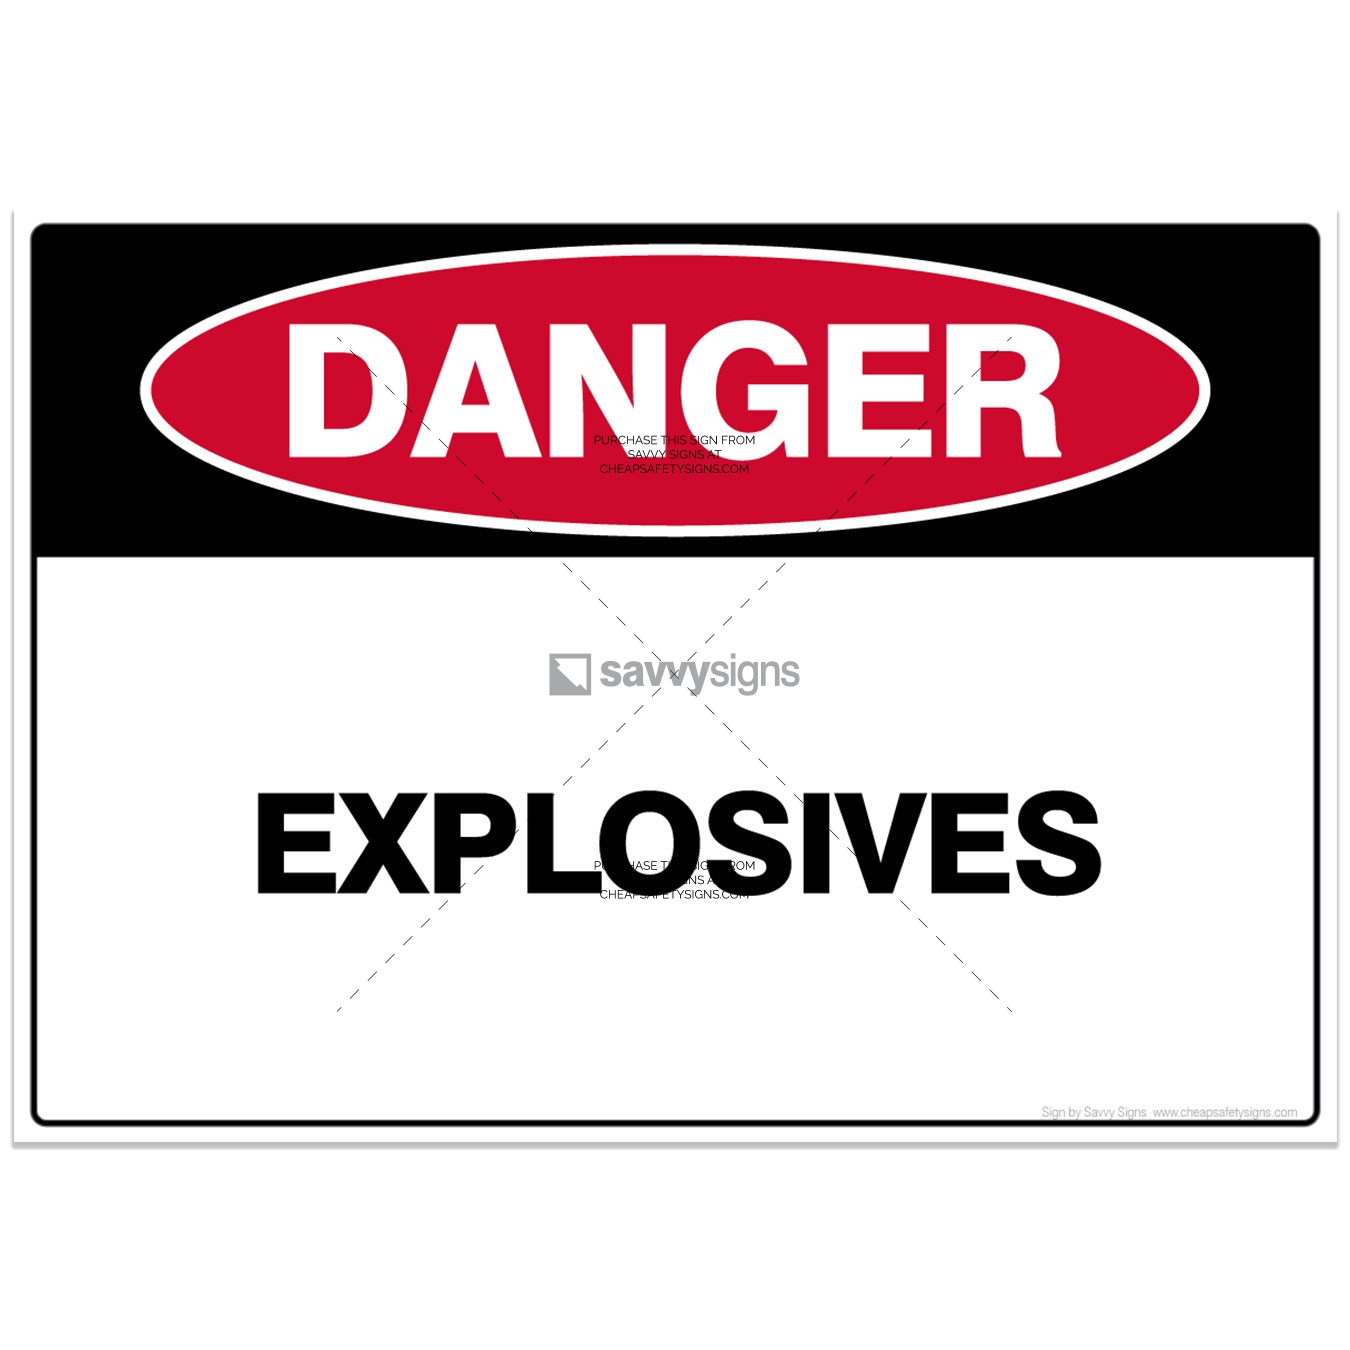 SSDAN3044-DANGER-Workplace-Safety-Signs_Savvy-Signs_v4.1